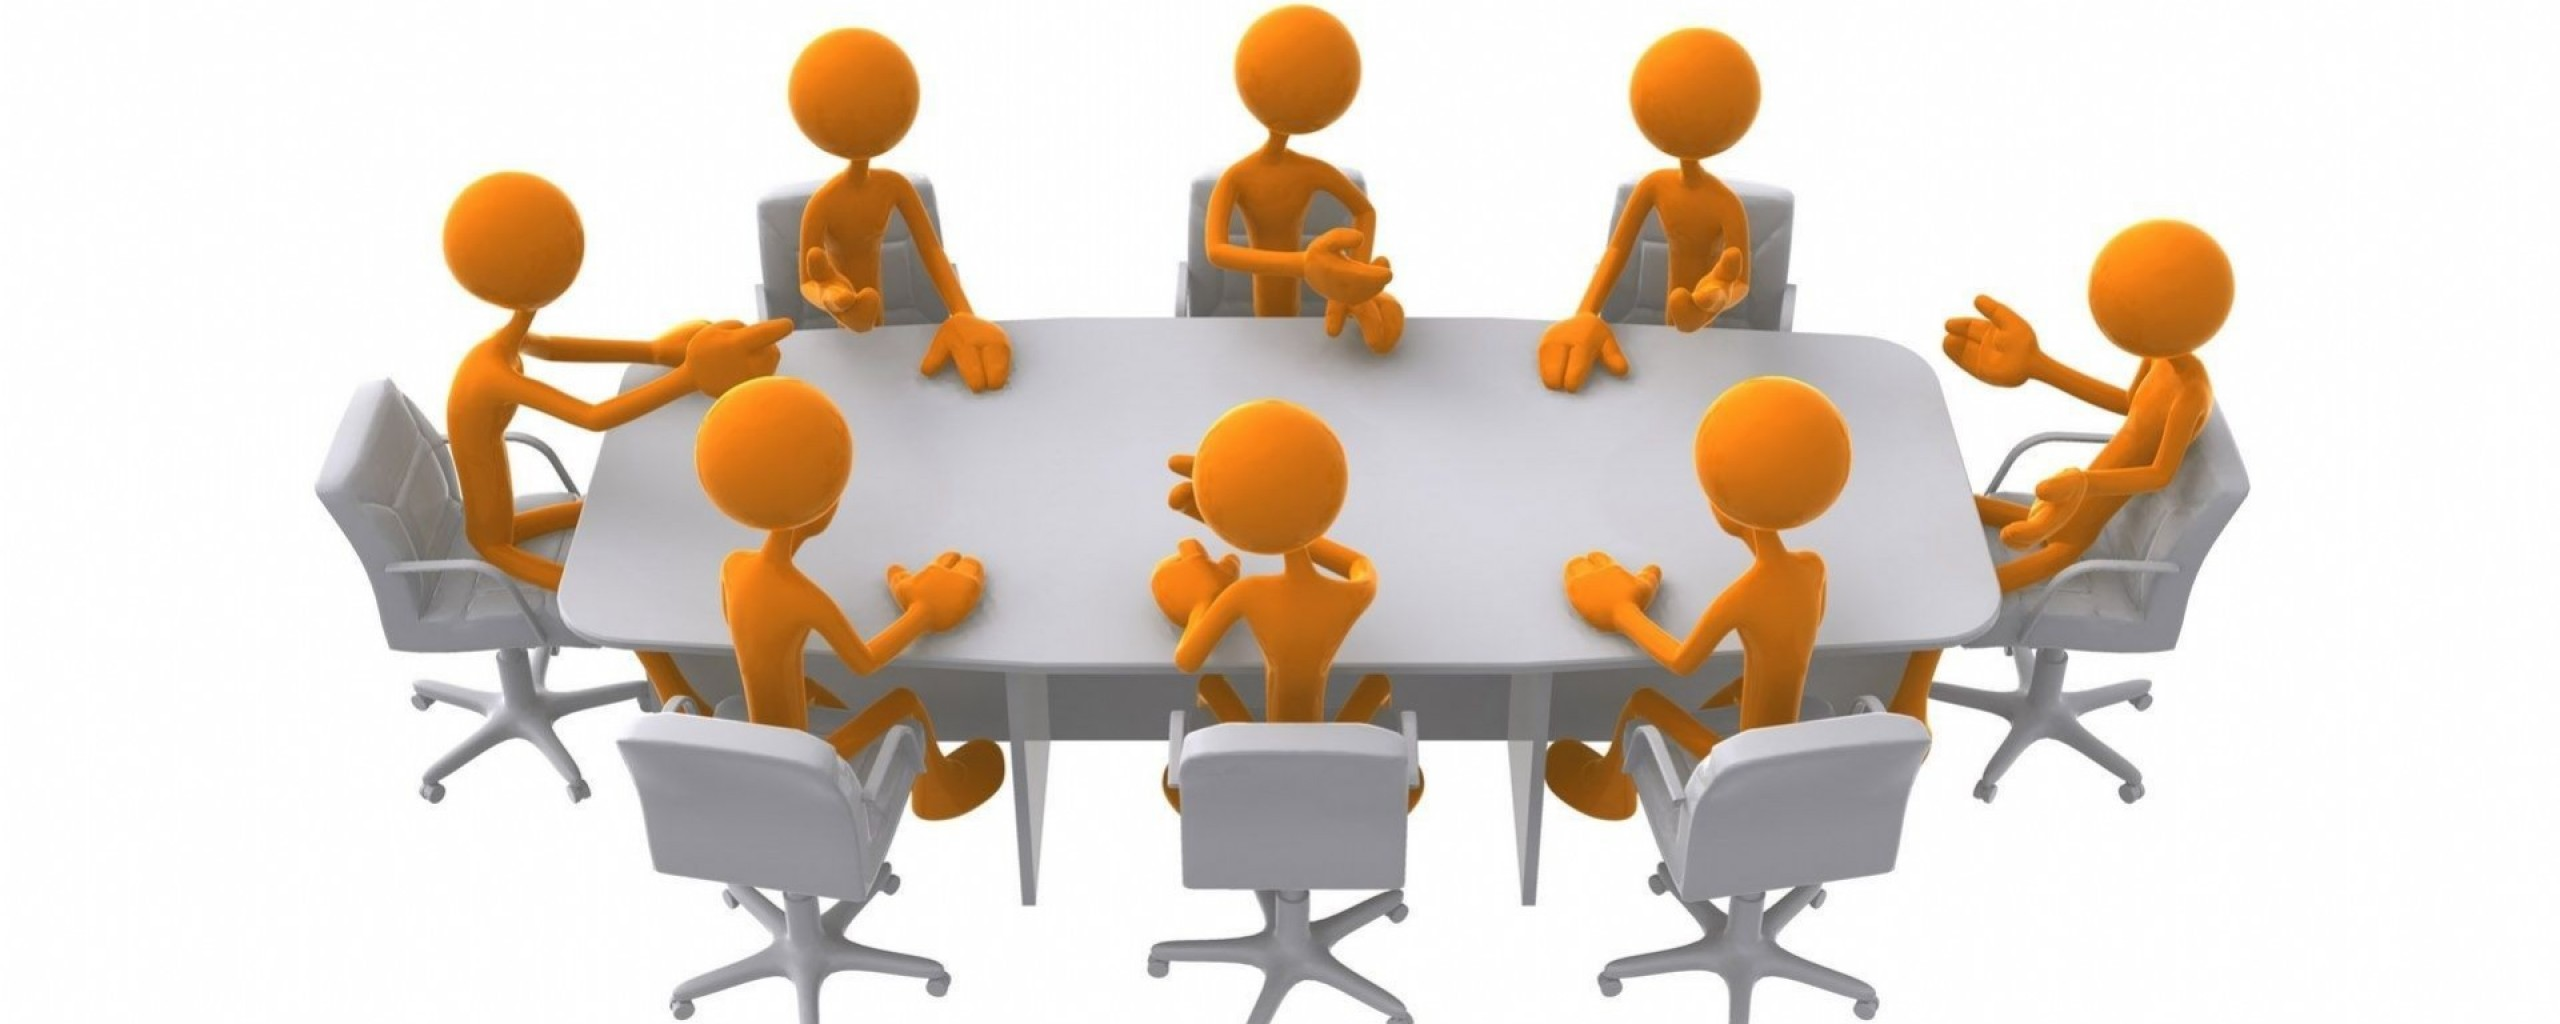 Meeting clipart free images 3